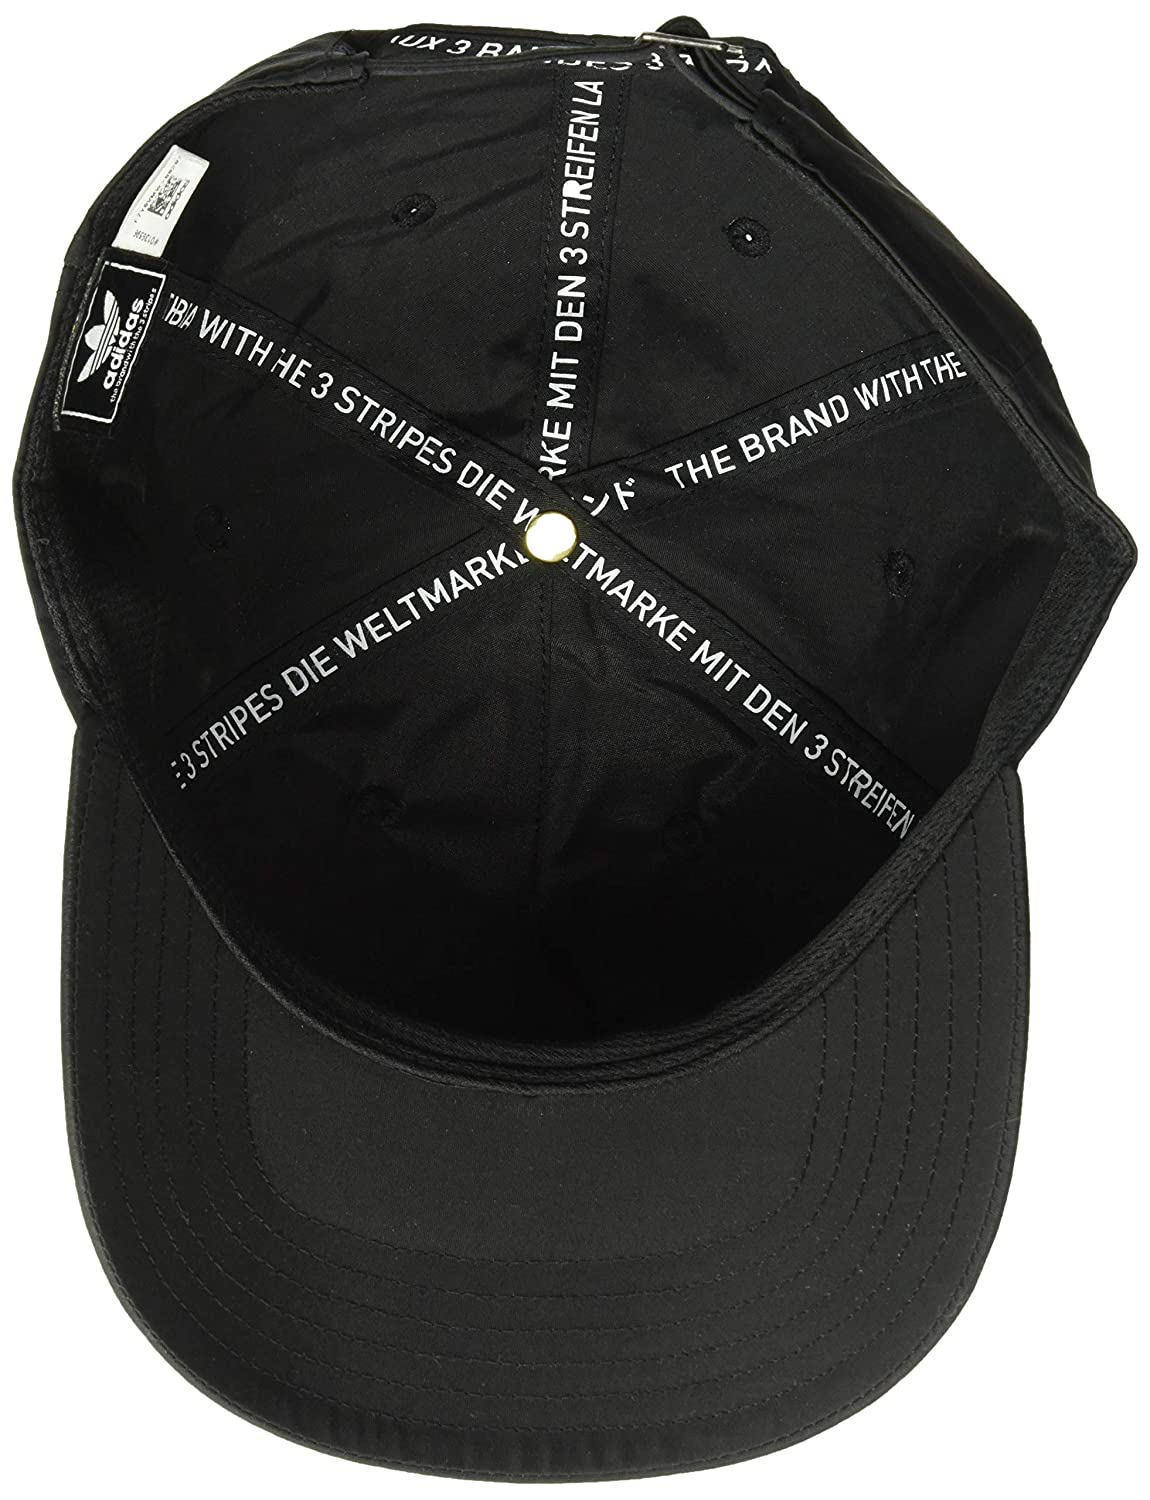 newest 17d74 beee6 Amazon.com  adidas Men s Originals NMD Relaxed Strapback Cap, black white,  One Size  Sports   Outdoors